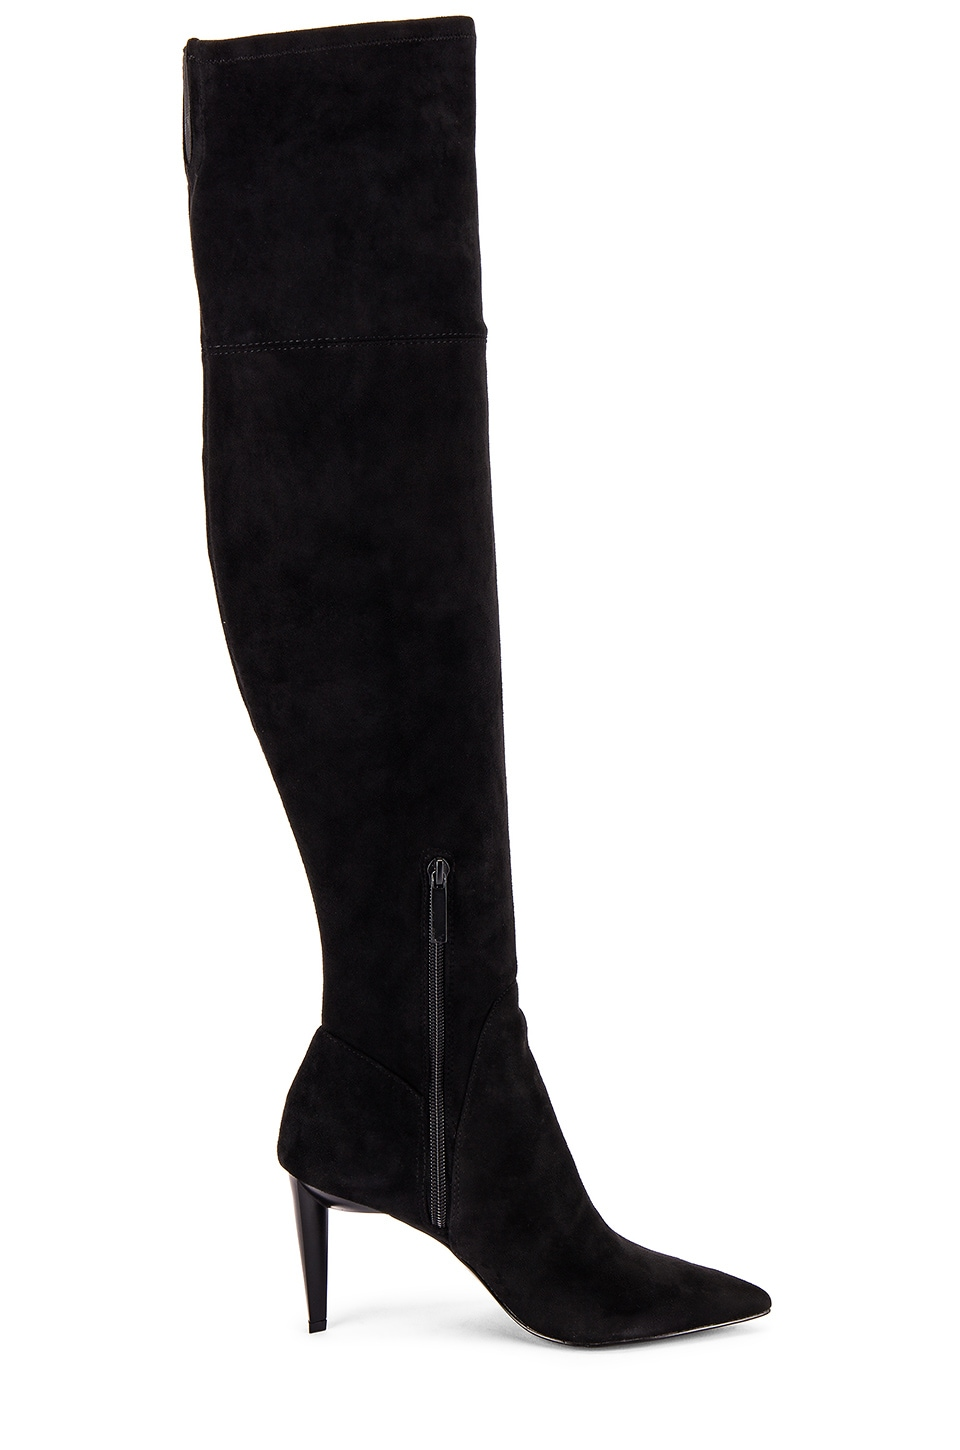 KENDALL + KYLIE Zoa Boot in Black